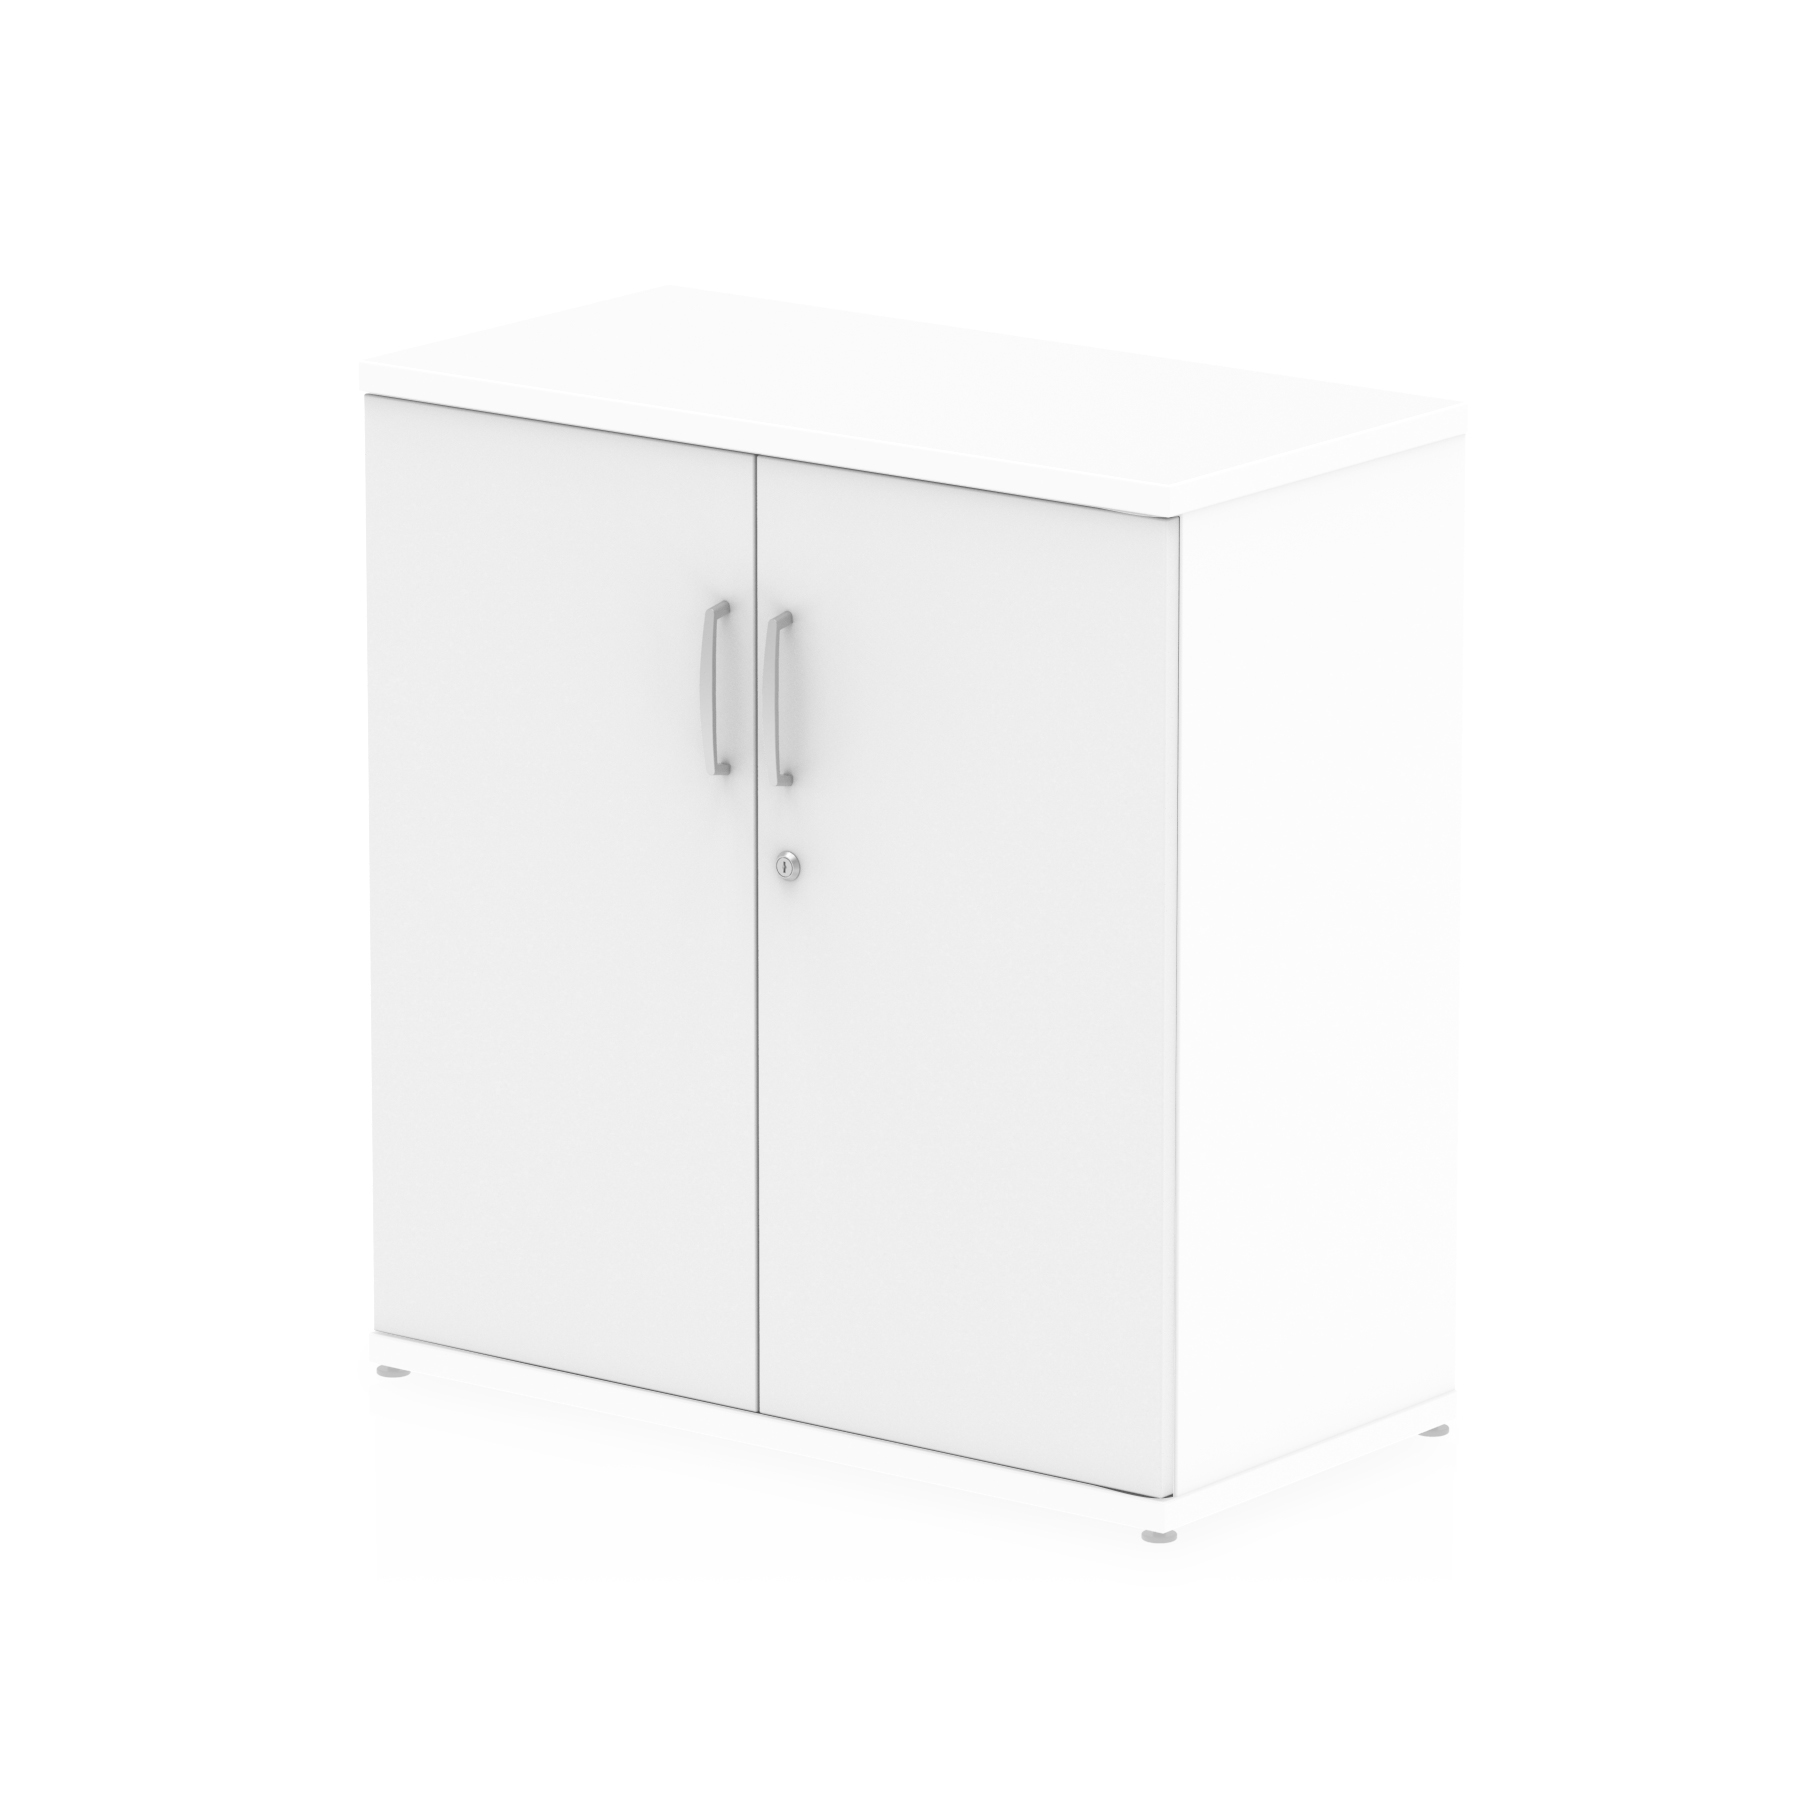 Trexus Door Pack For 800mm High Cupboard White Ref I000173